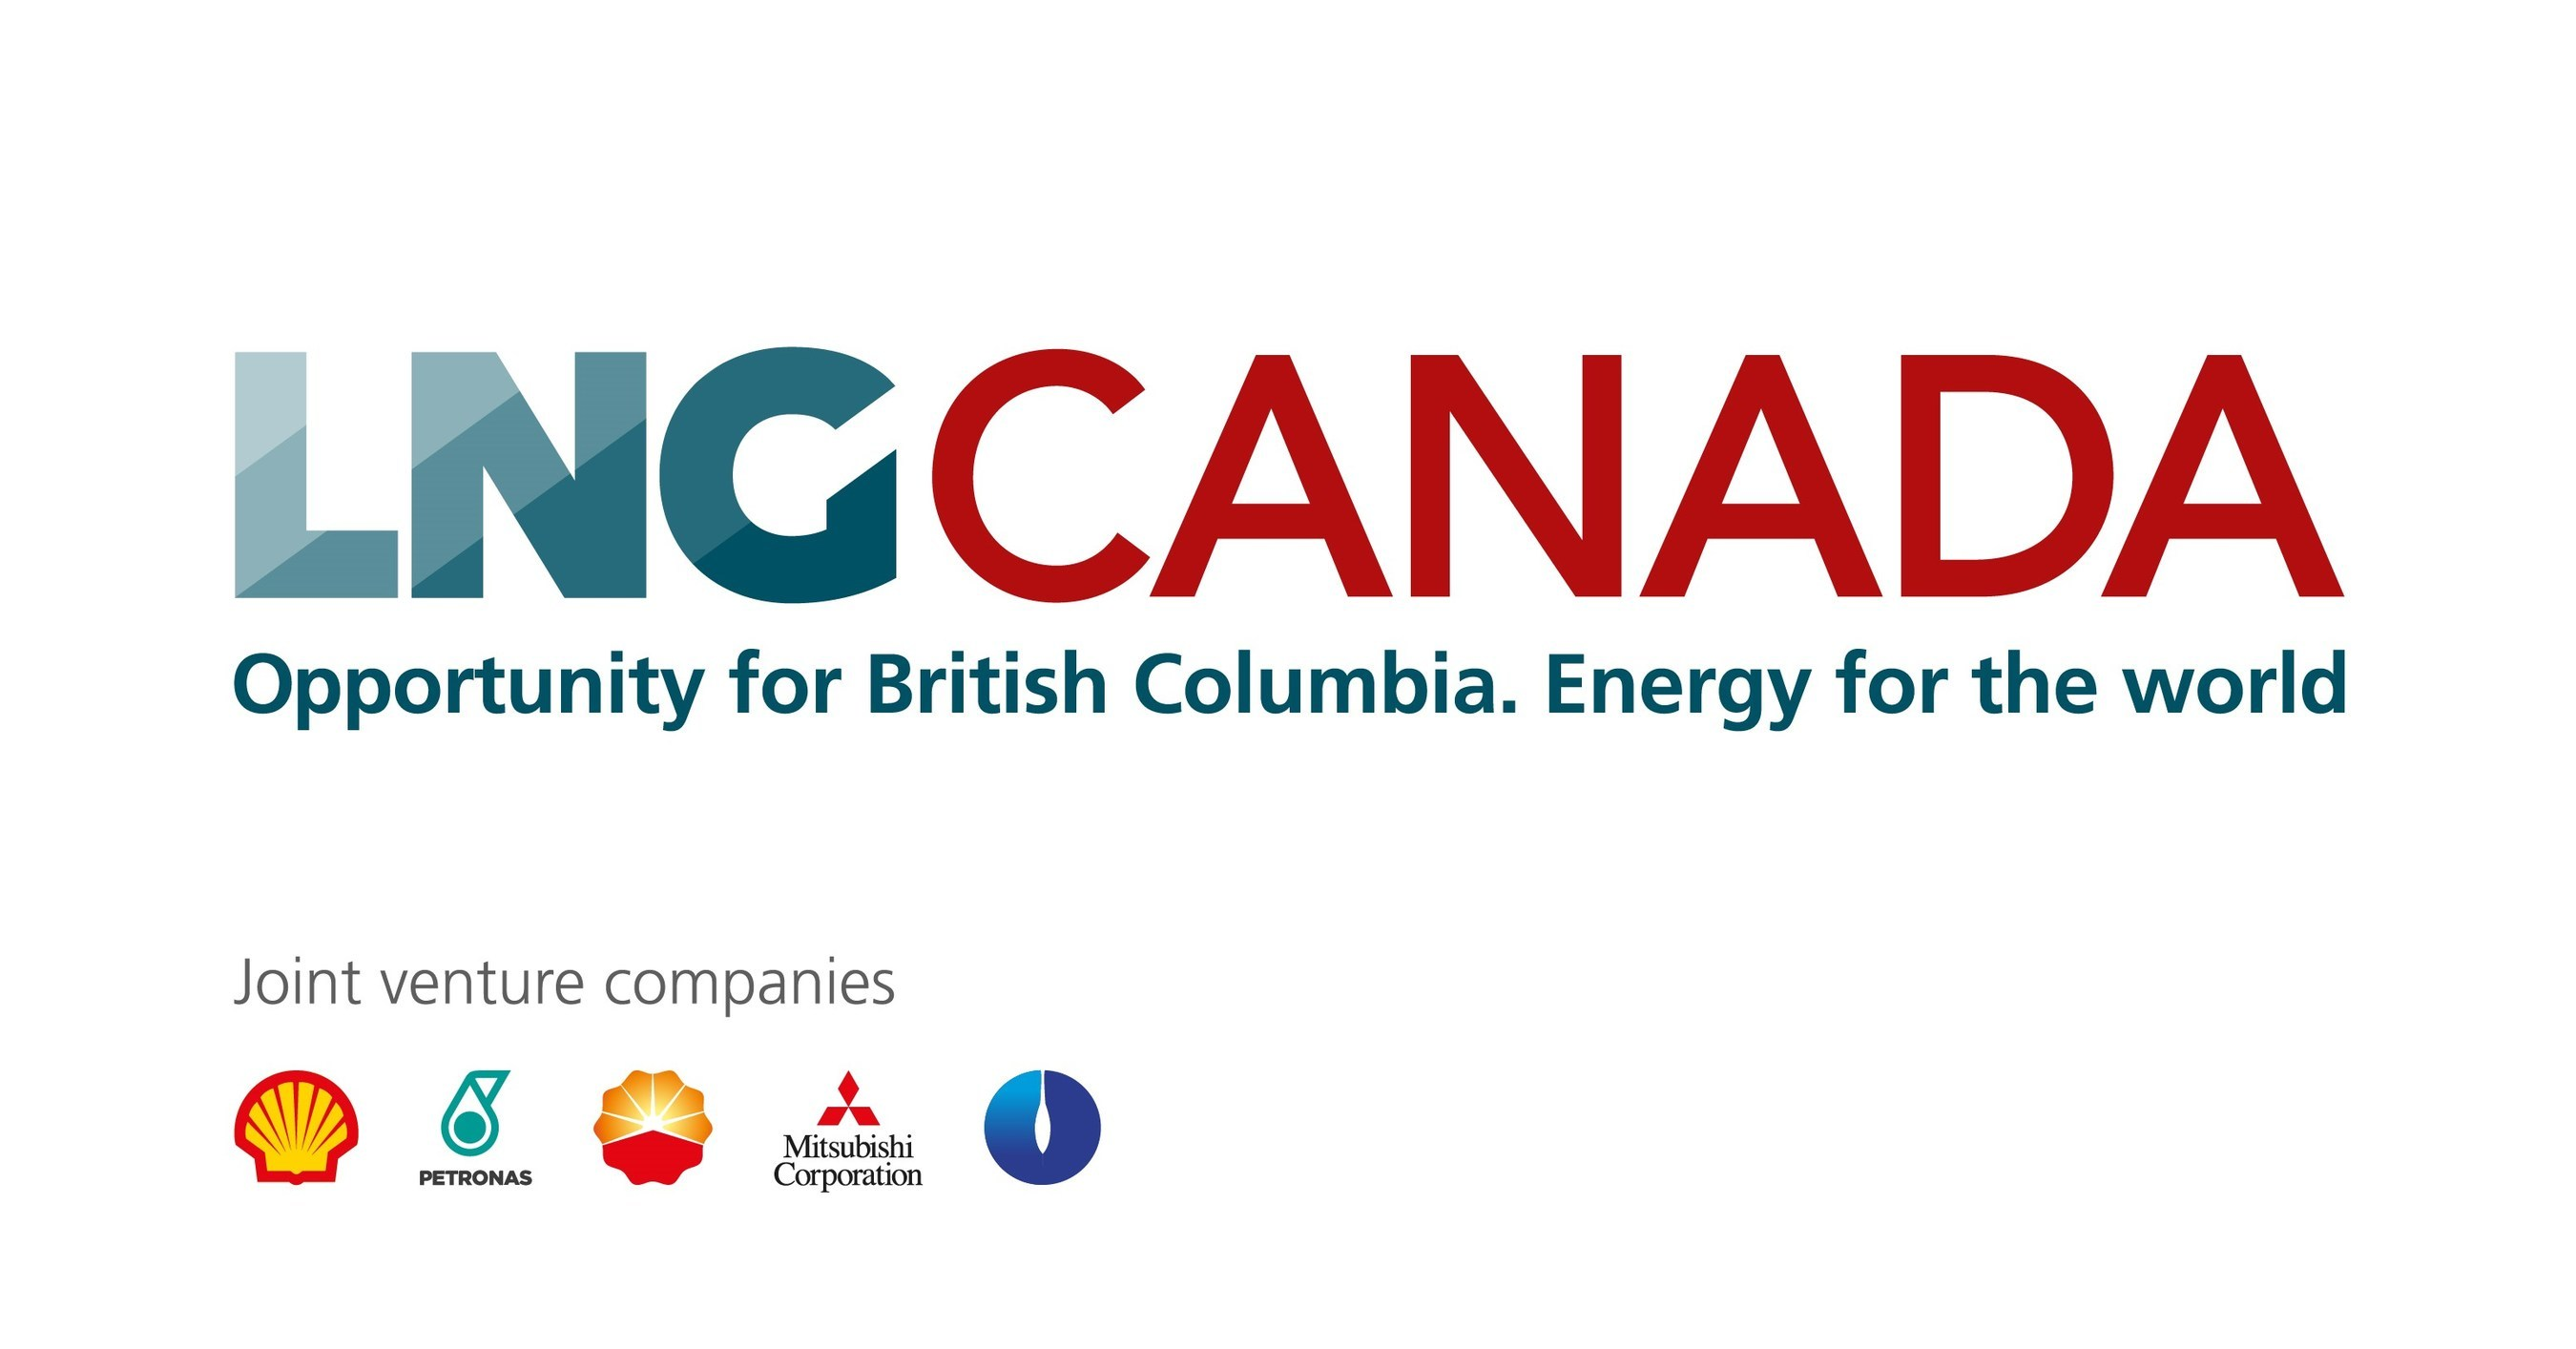 LNG Canada and JGC Fluor launch unique program to double